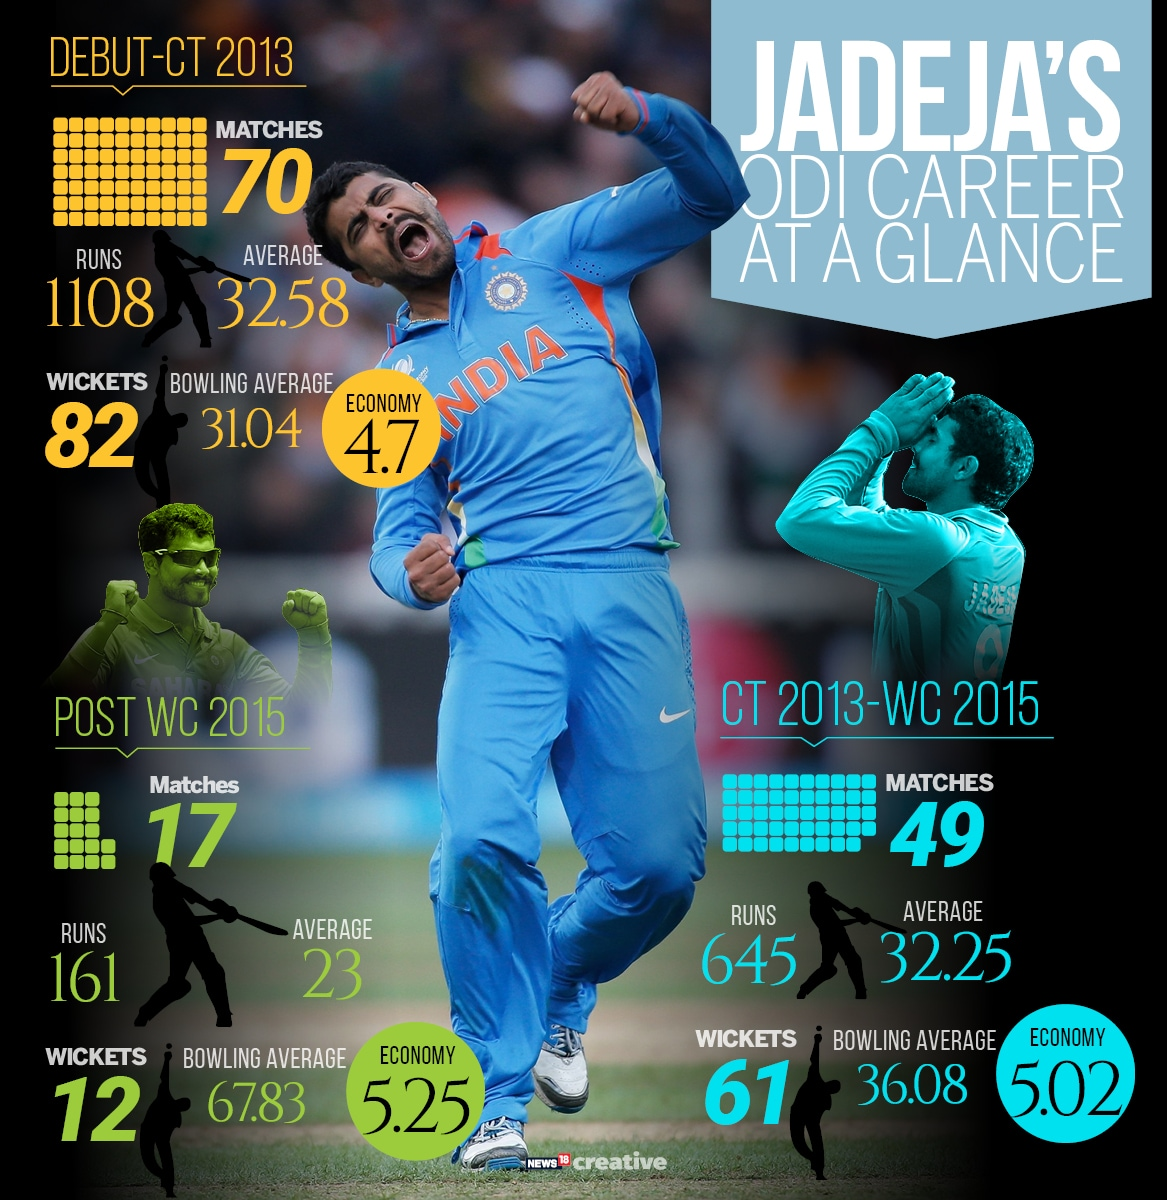 Jadeja ODI CAREER AT A GLANCE